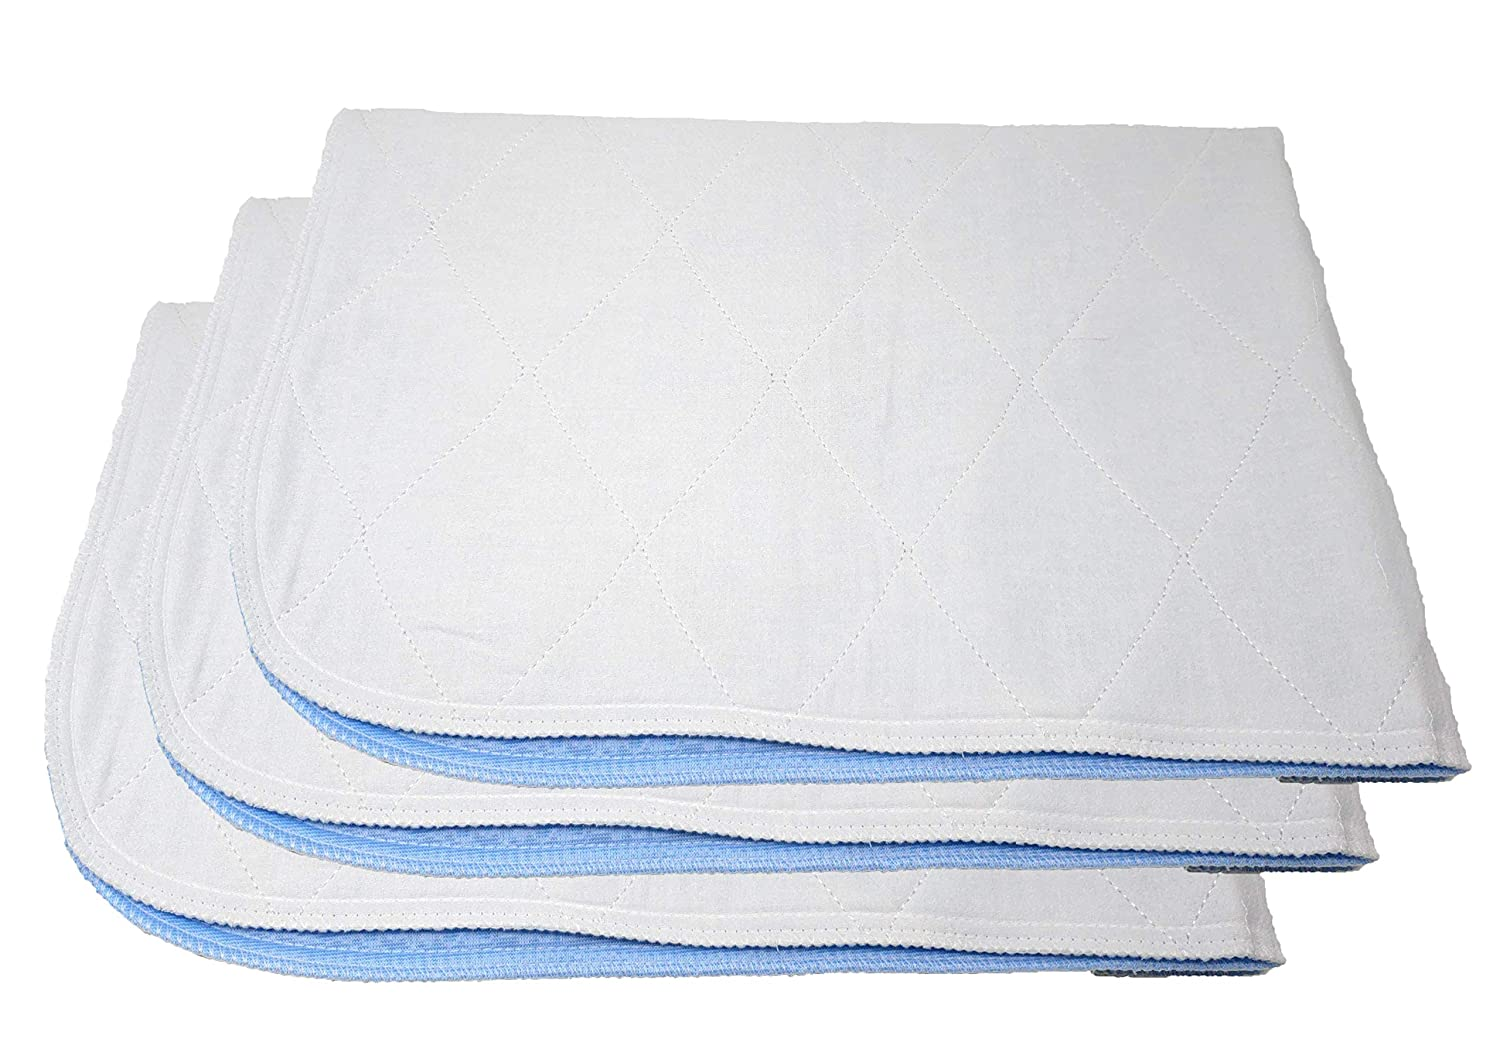 "Premium Incontinence Washable Bed Pad - Heavy Duty Reusable Cotton Quilted Underpad - 34""X35"" - 3 Pack"